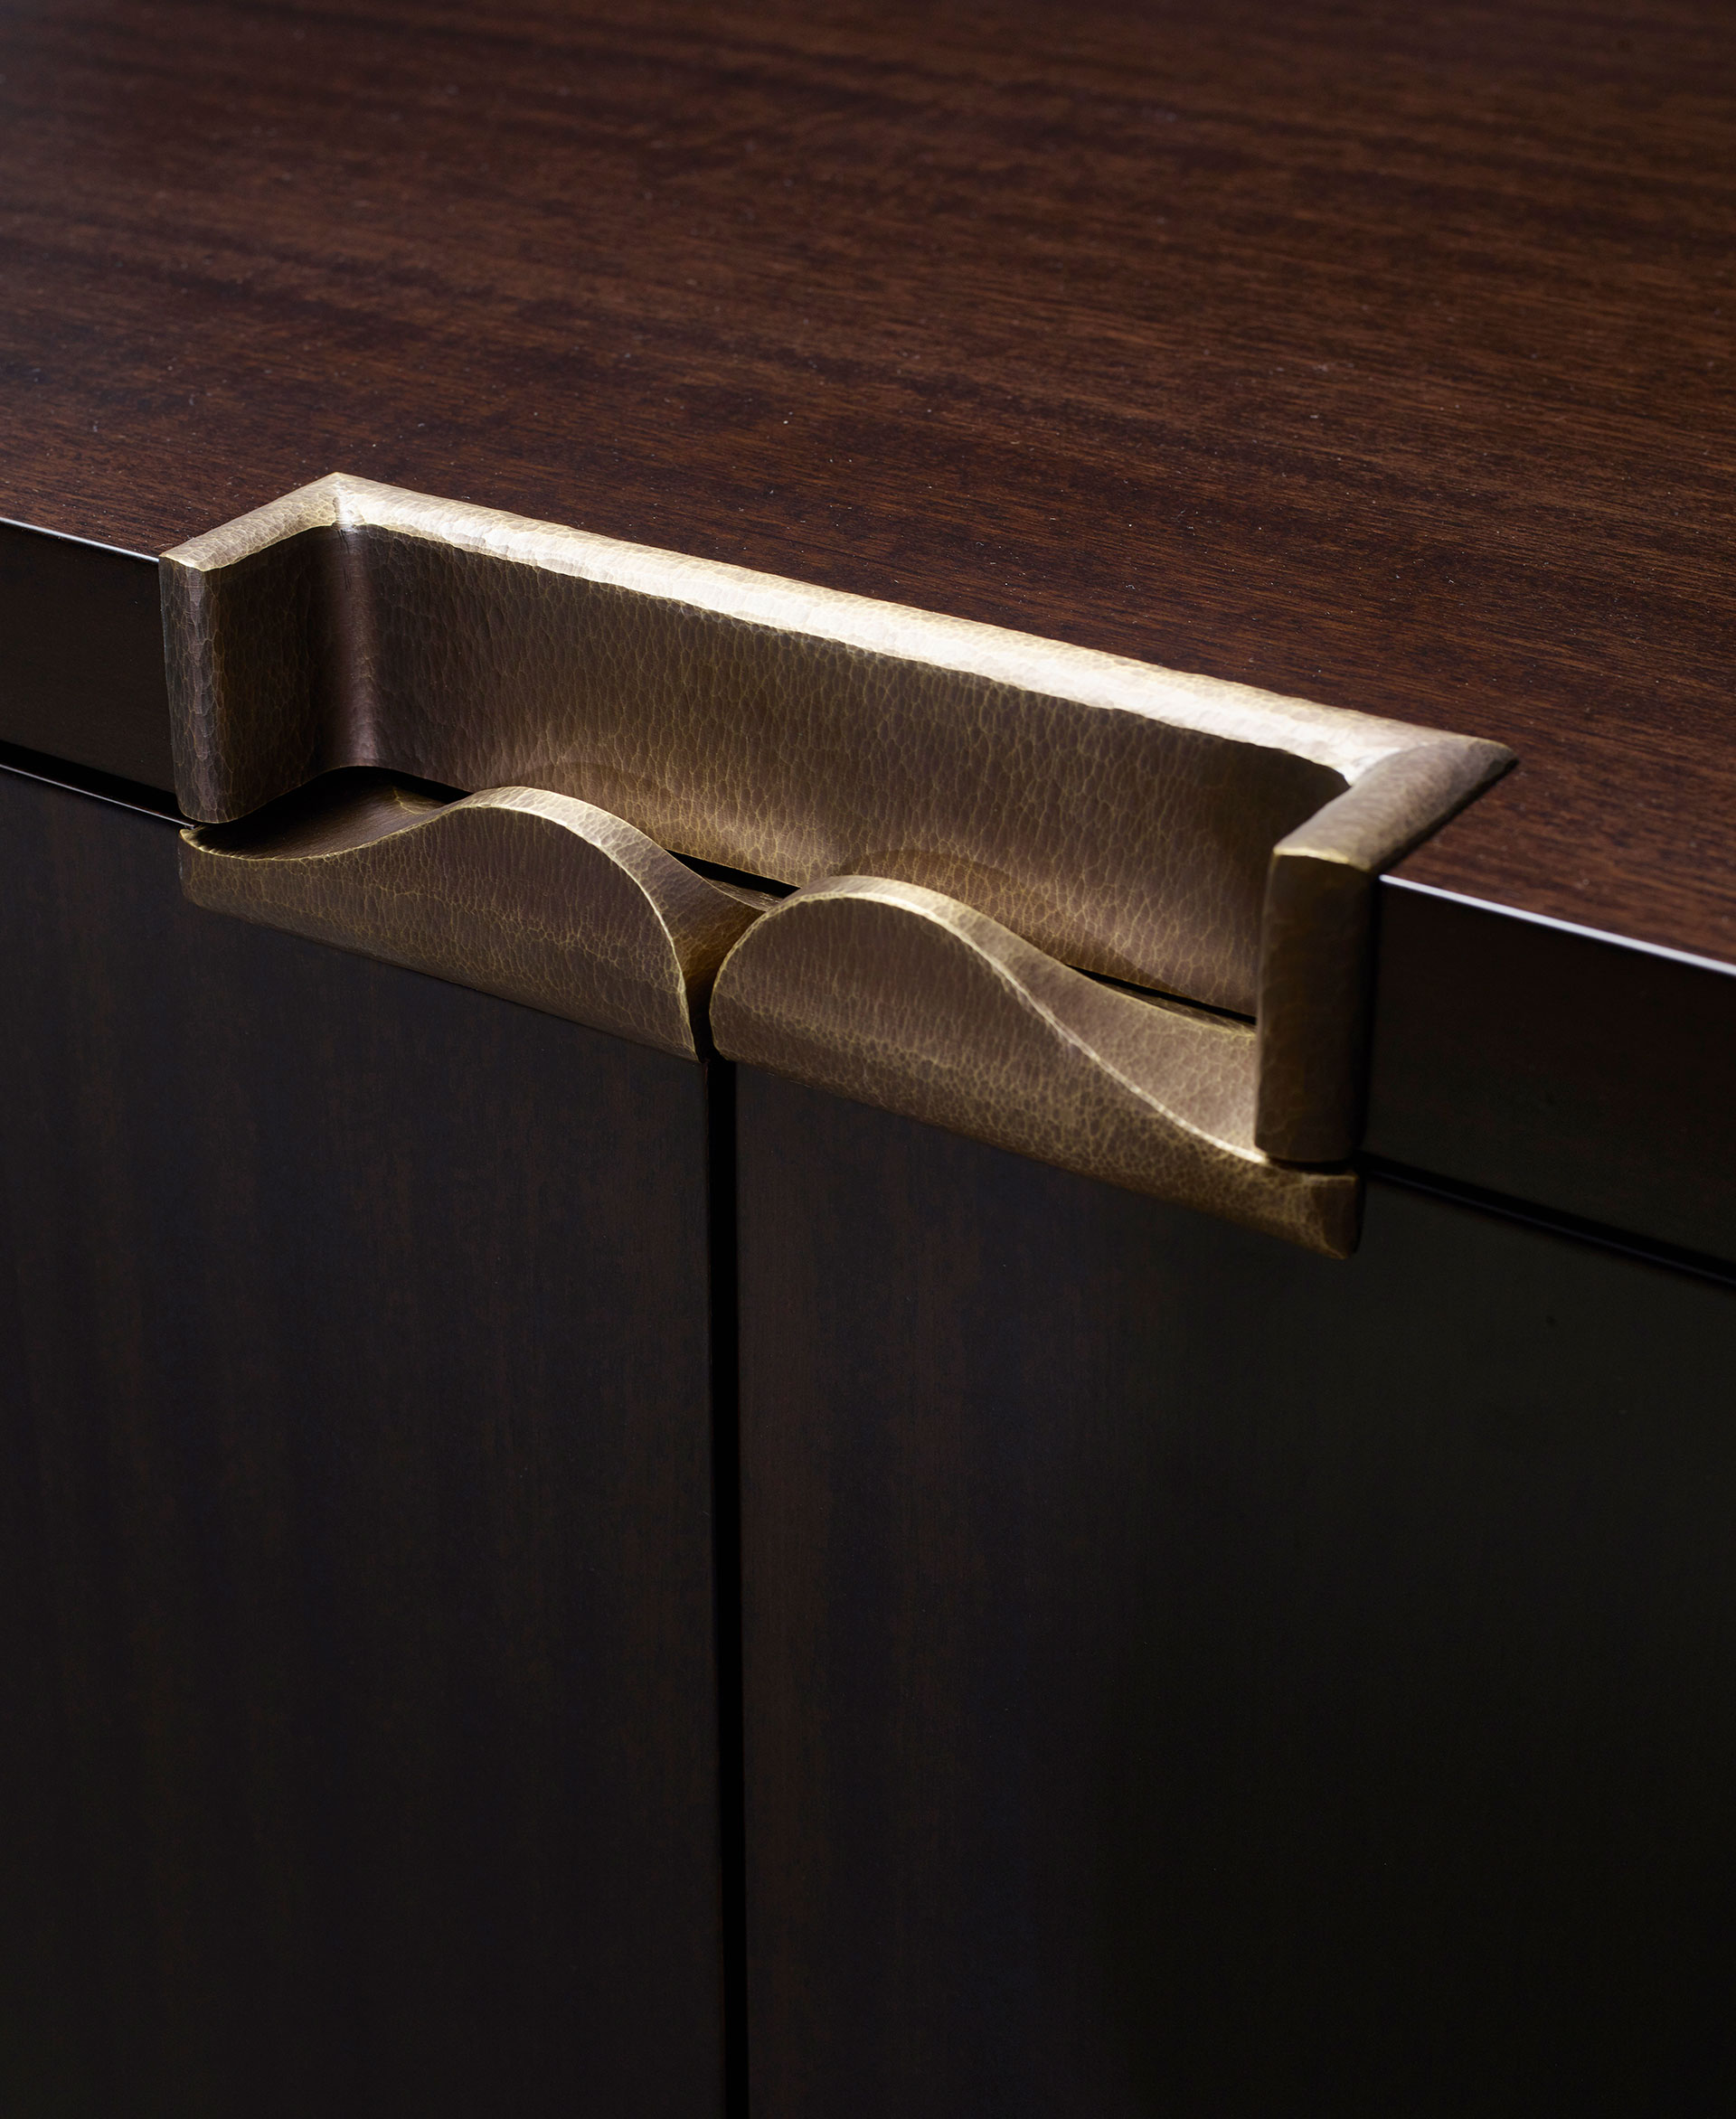 Bronze handle detail of Margot, a wooden cabinet with bronze base, handle and hinges from Promemoria's catalogue | Promemoria